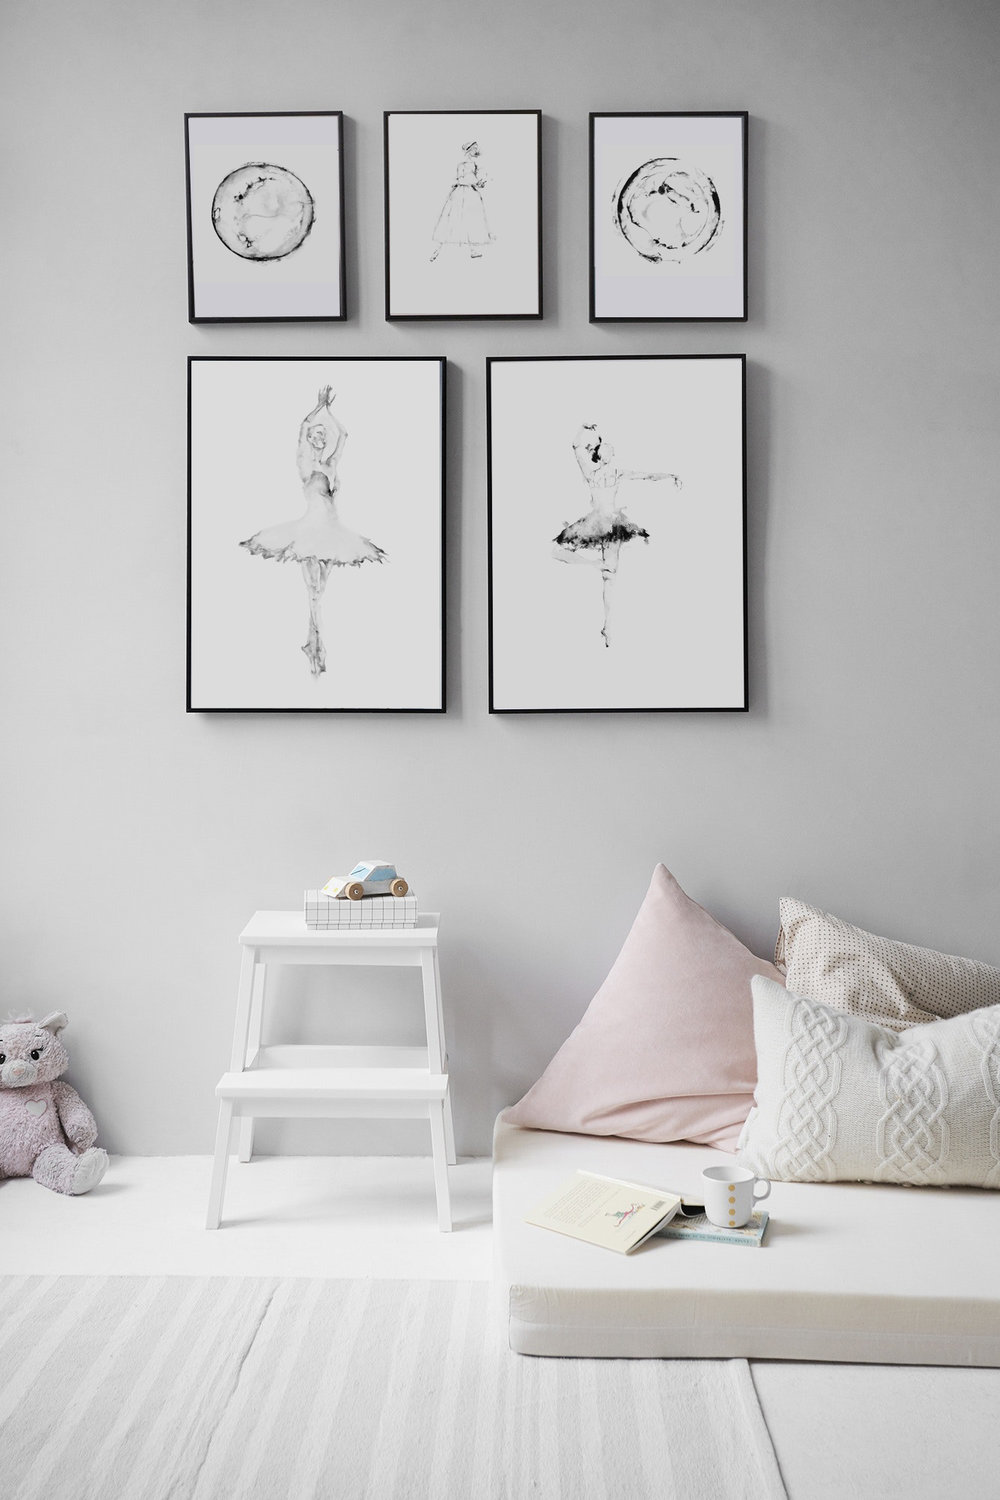 Ballerina Prints by Felipe